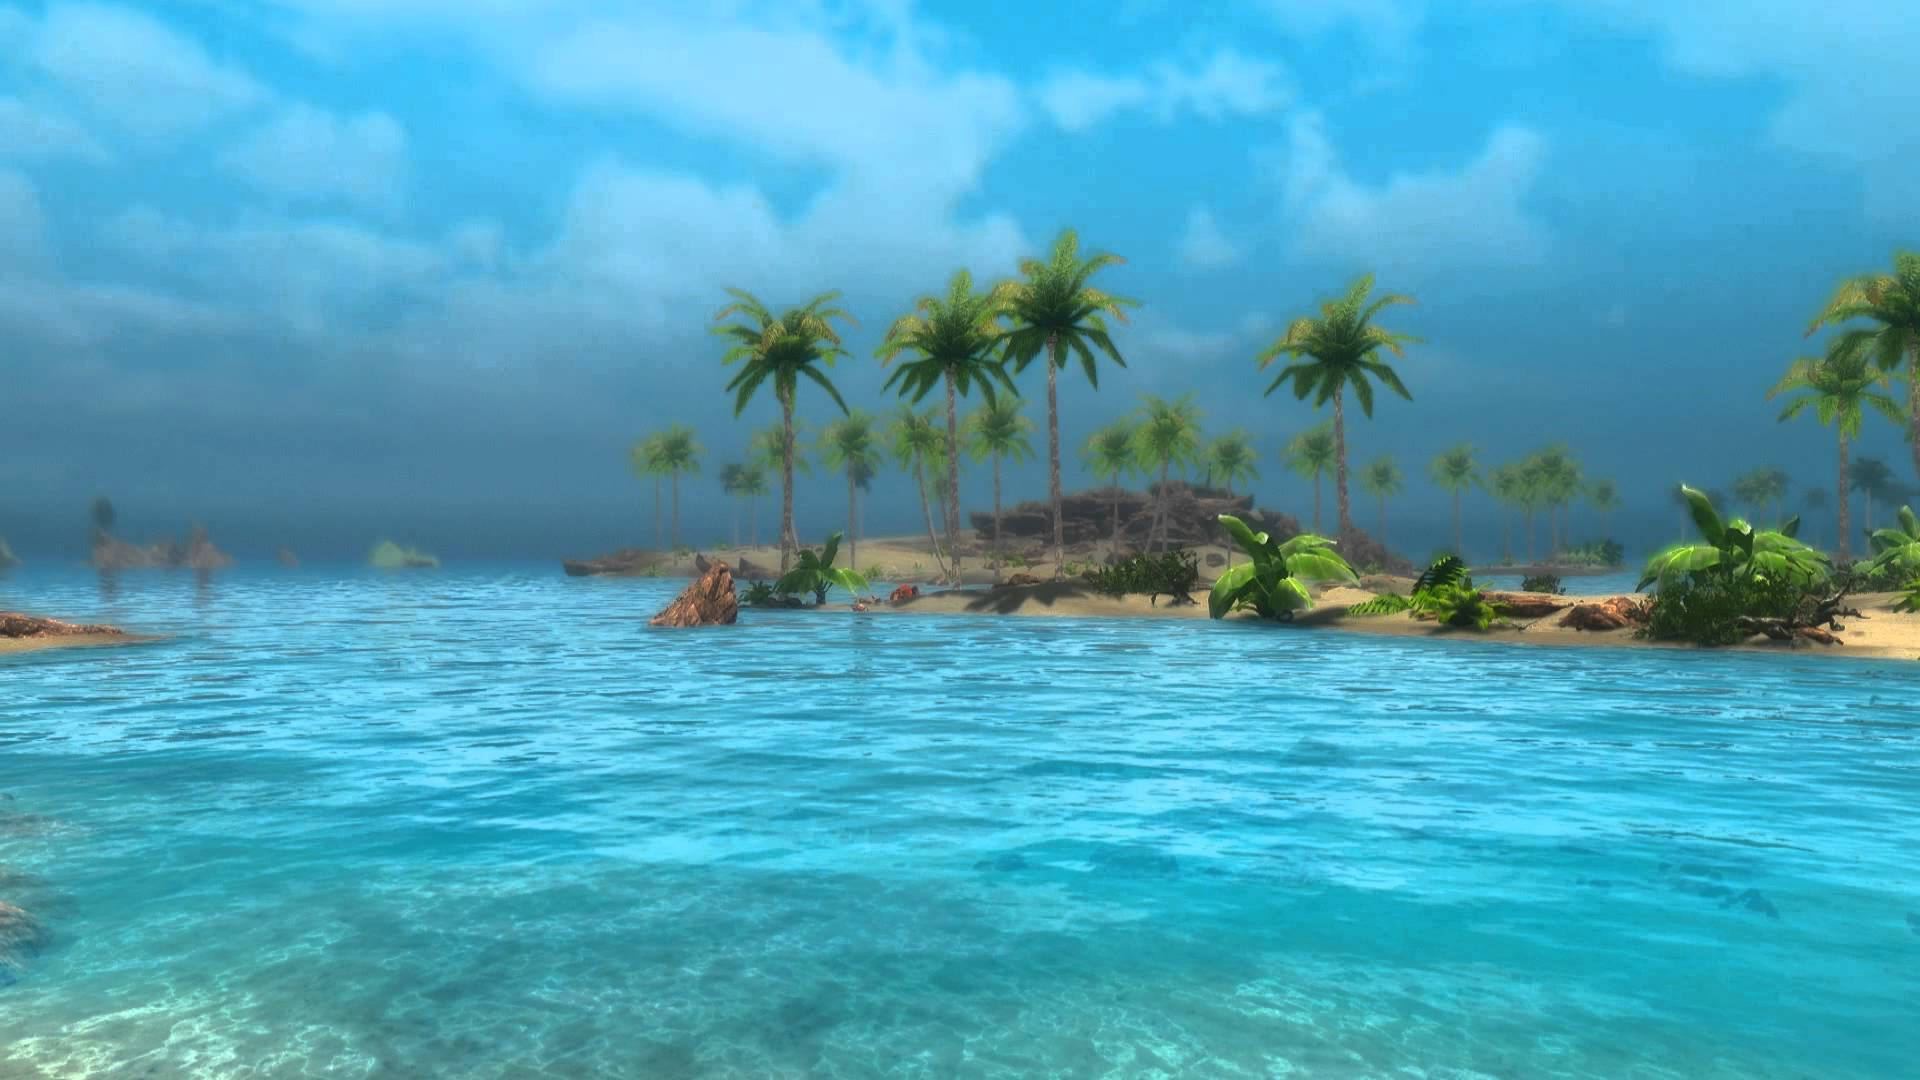 Animated Desktop Wallpaper   Tropical Skyrim 2   Sunny Beach 1920x1080